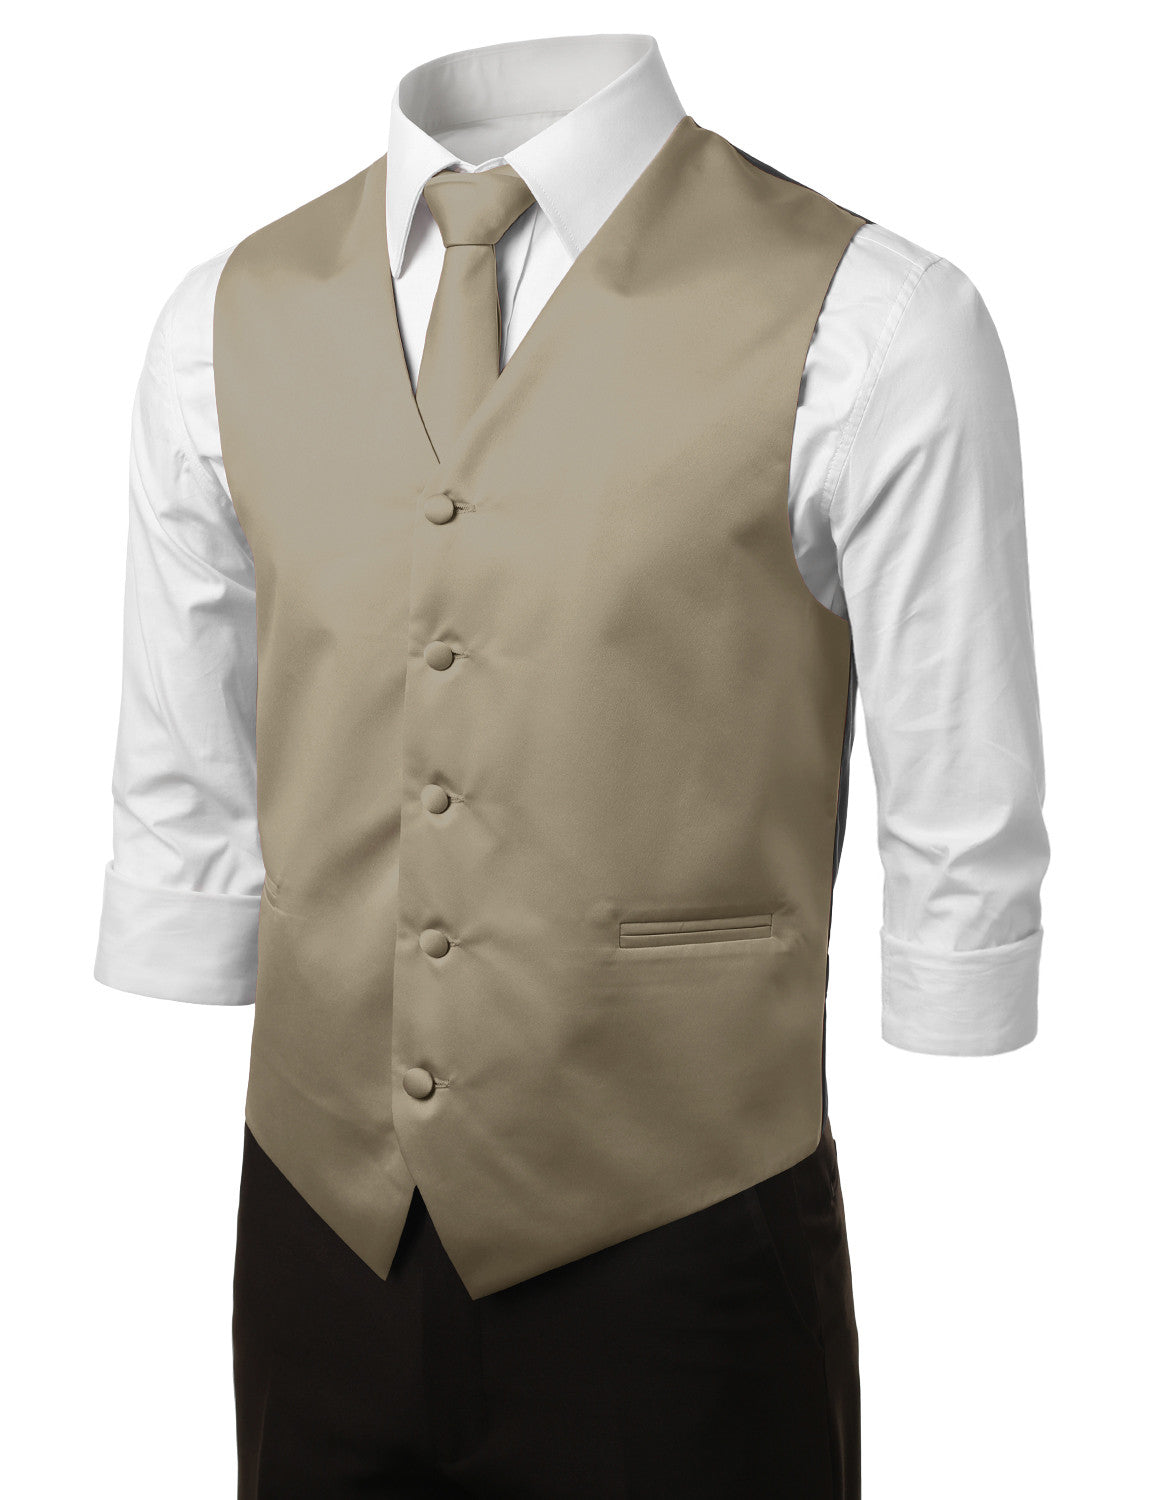 BEIGE14 Formal Tuxedo 3 Piece Vest Set (Vest, Necktie, Pocket Square)- MONDAYSUIT